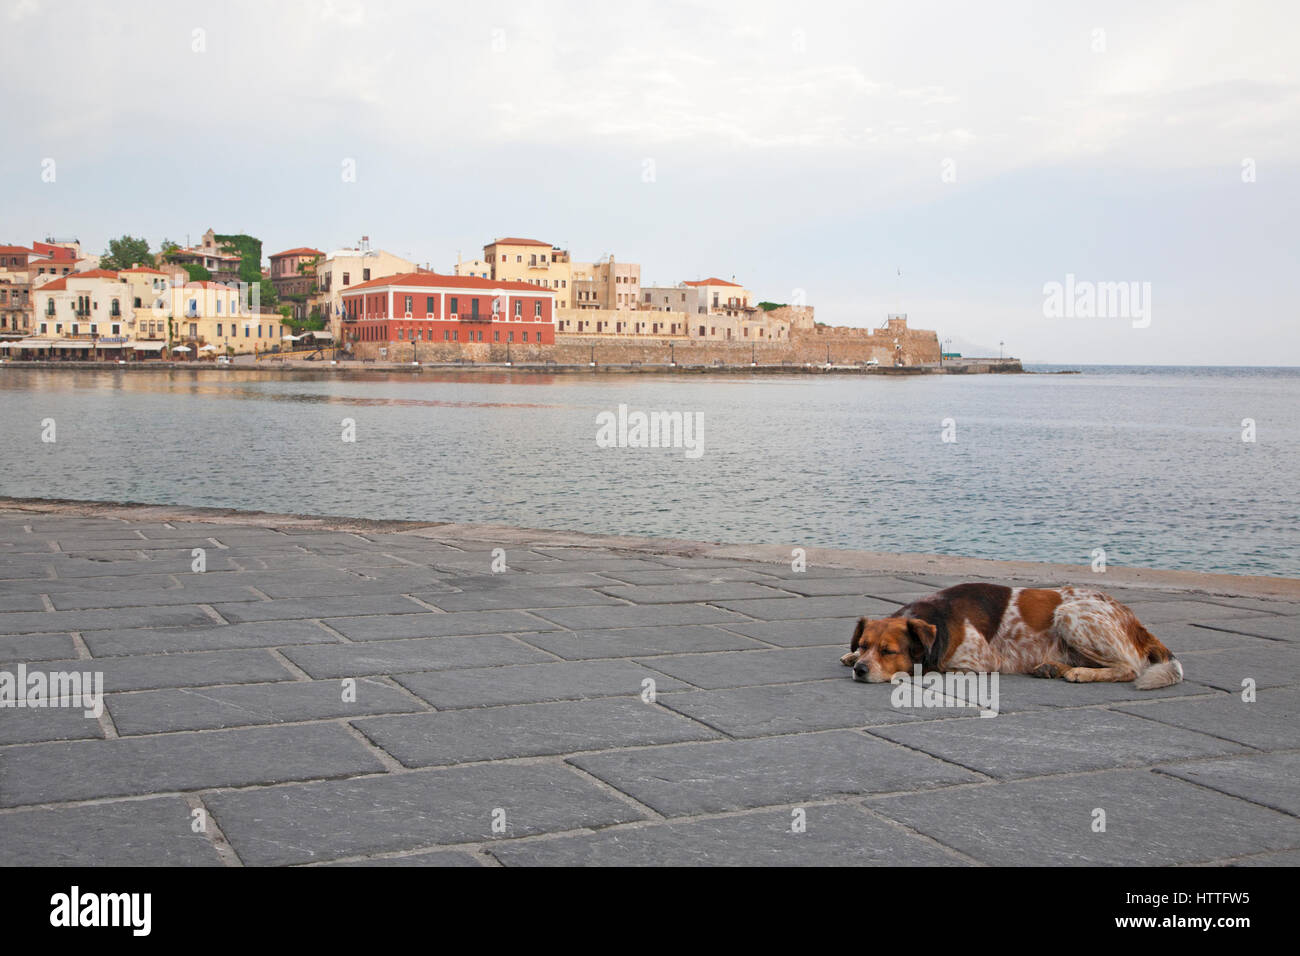 Dog sleeping on Venetian harbor waterfront in old town Chania - Stock Image